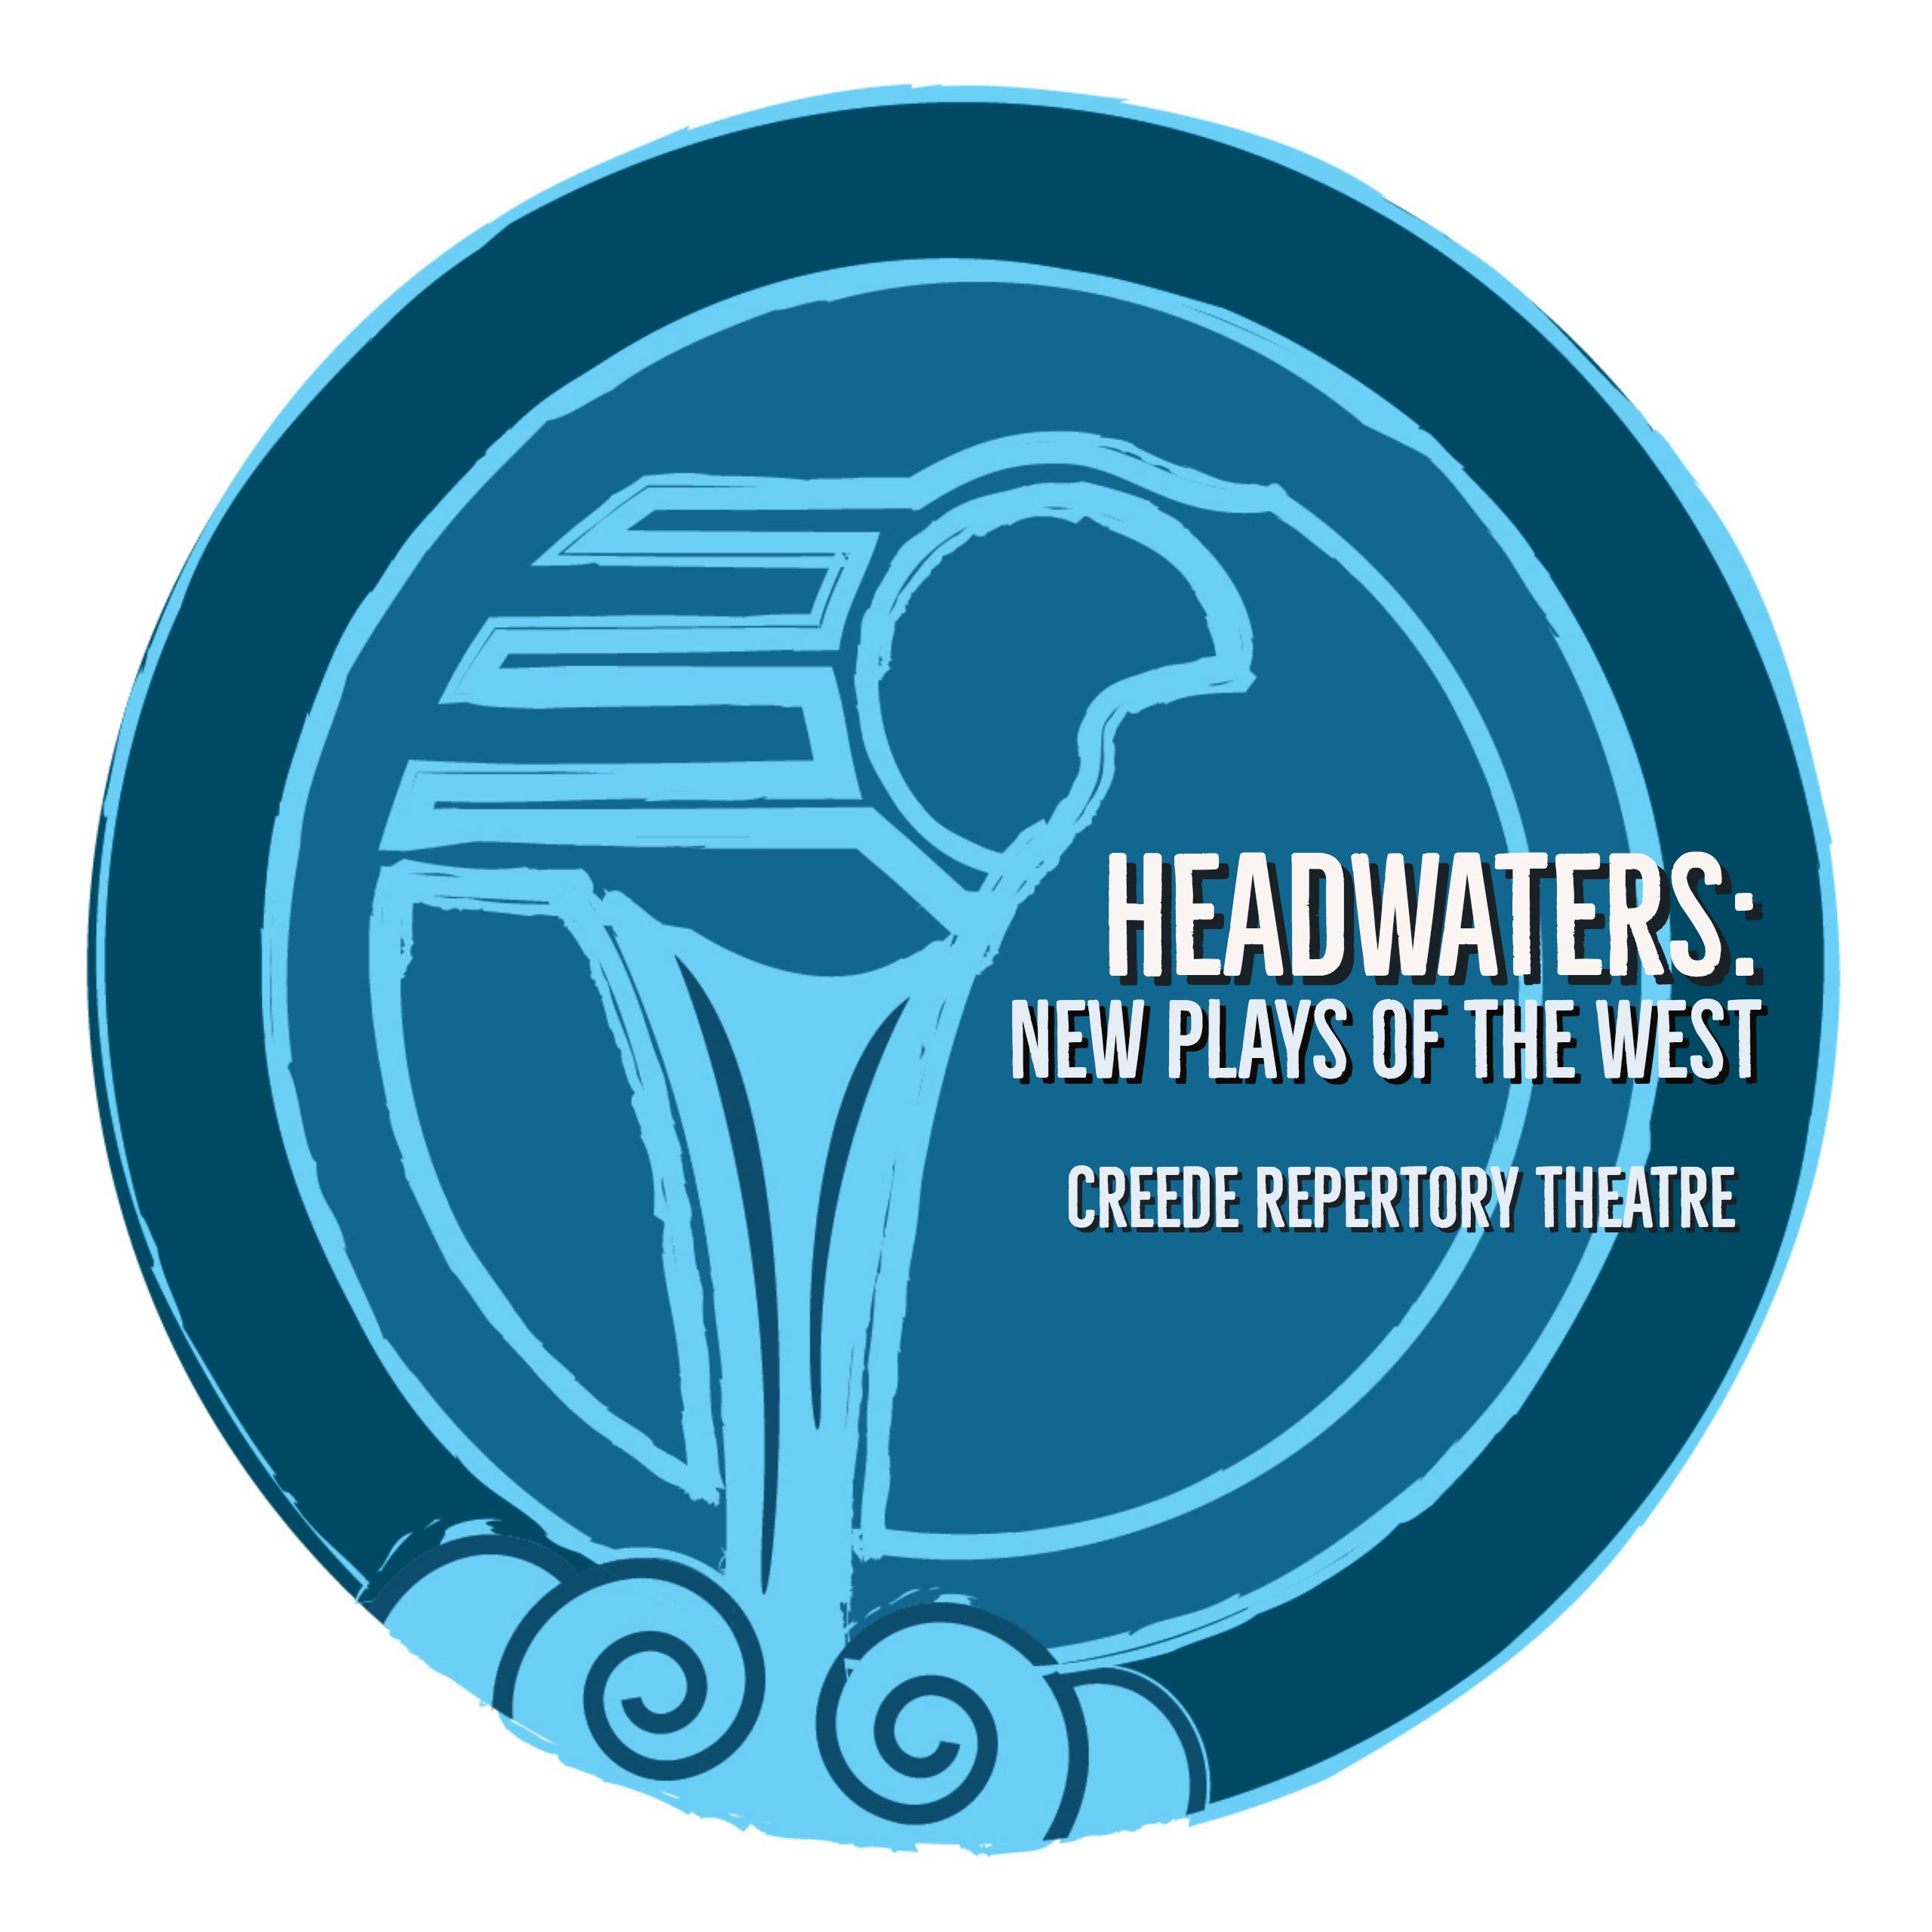 BWW Feature: Creede Repertory Theatre Announces 2017 Headwaters New Play Festival Selections